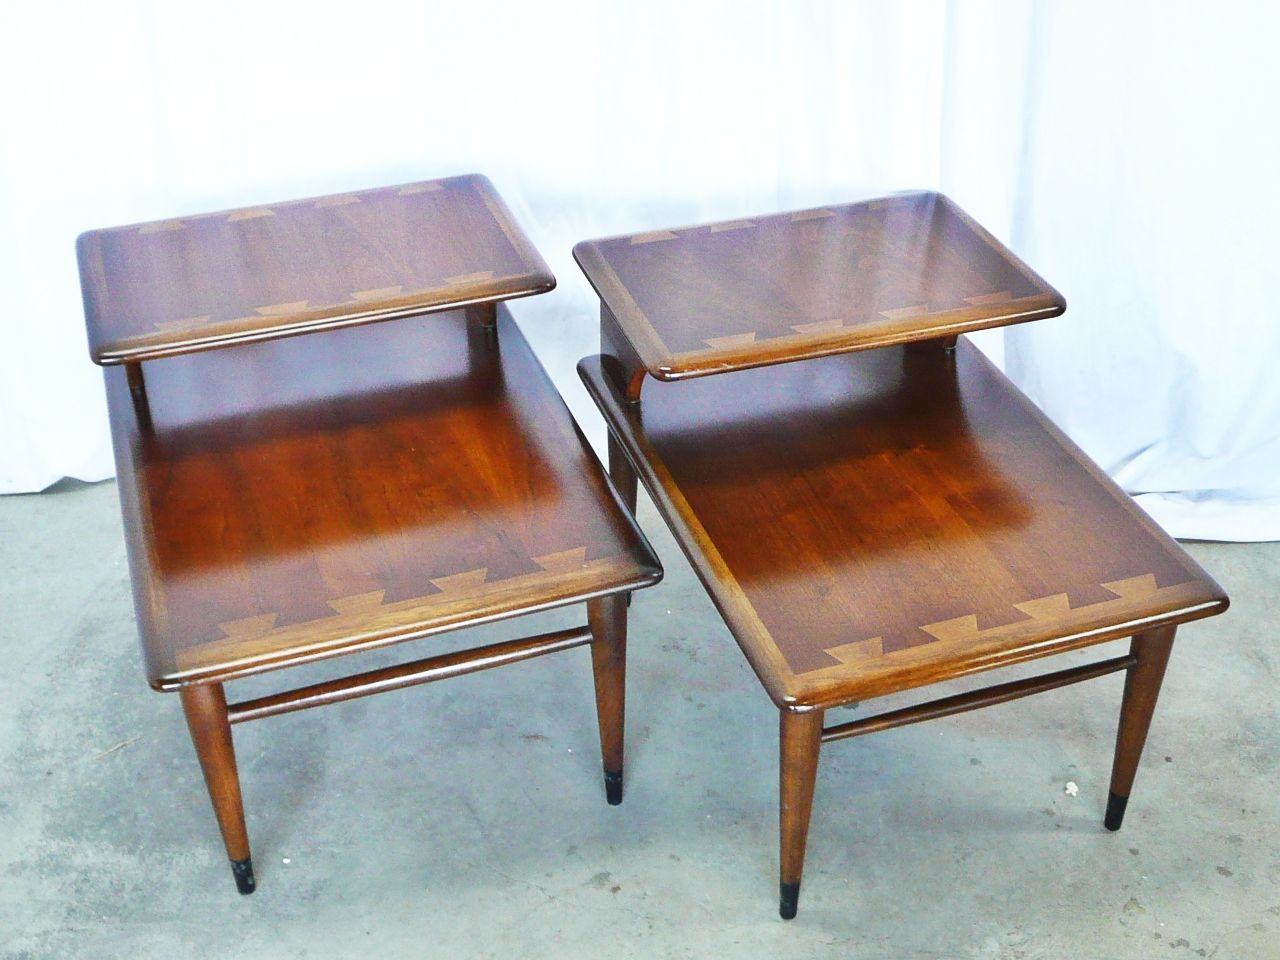 Vintage Lane Sofa Table Simple Leather Acclaim Bow Tie Step End Quotside Quot Tables By Andre Bus